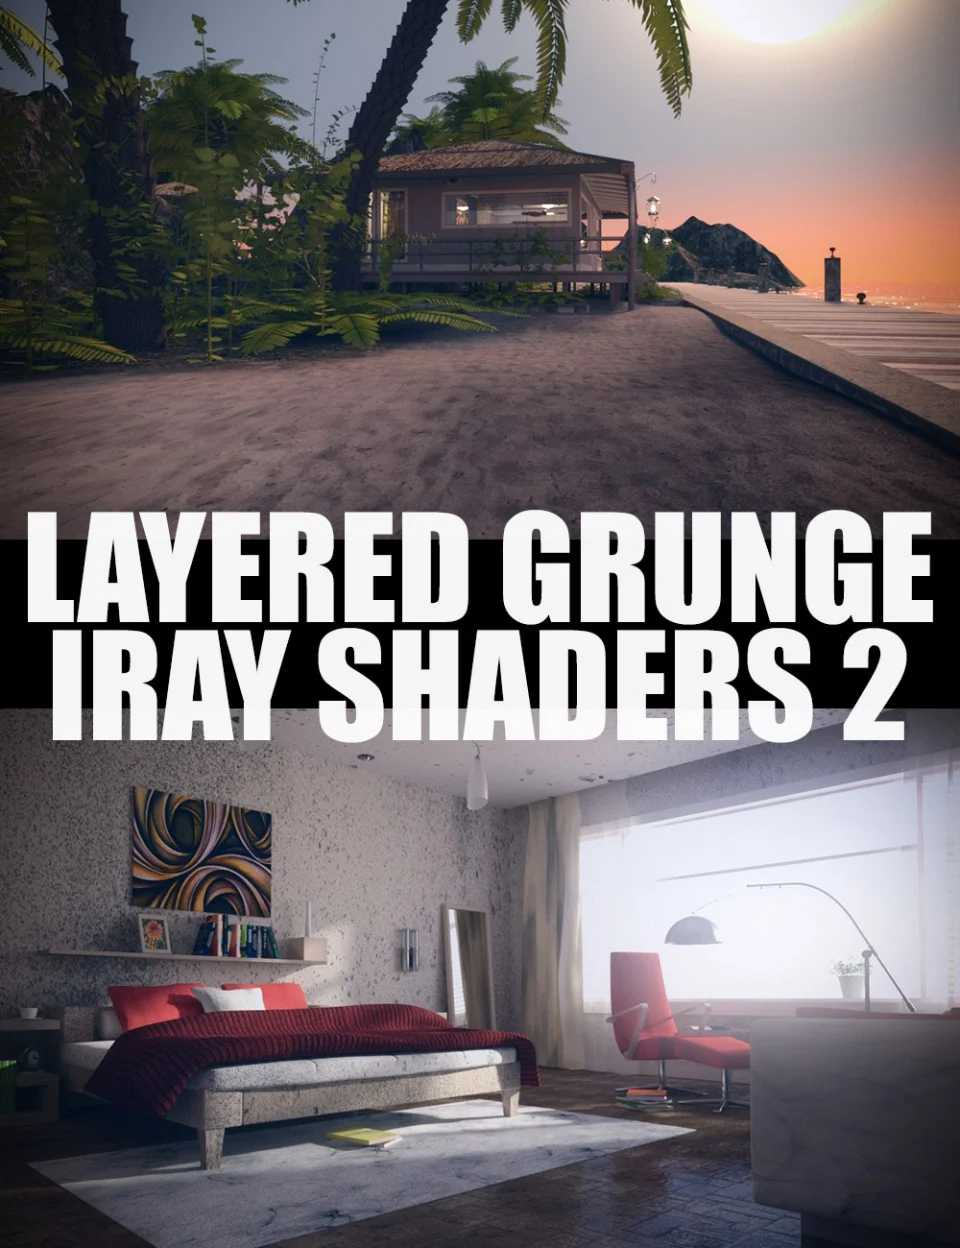 Layered Grunge Iray Shaders 2